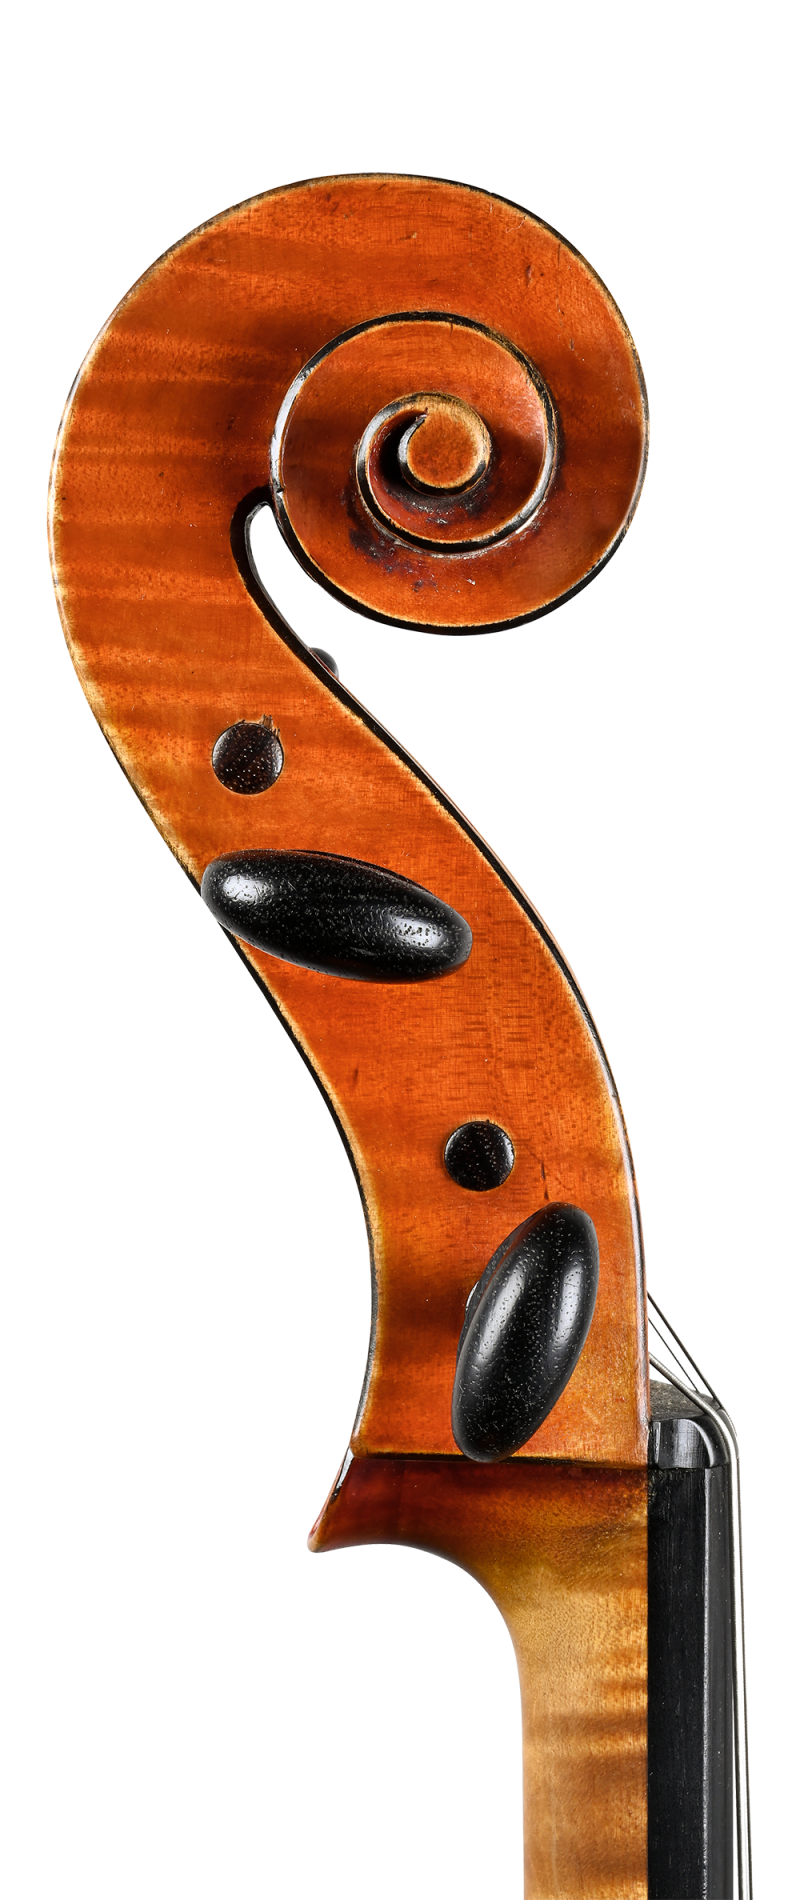 Scroll of a cello by Charles Adolphe Gand, Paris, 1847